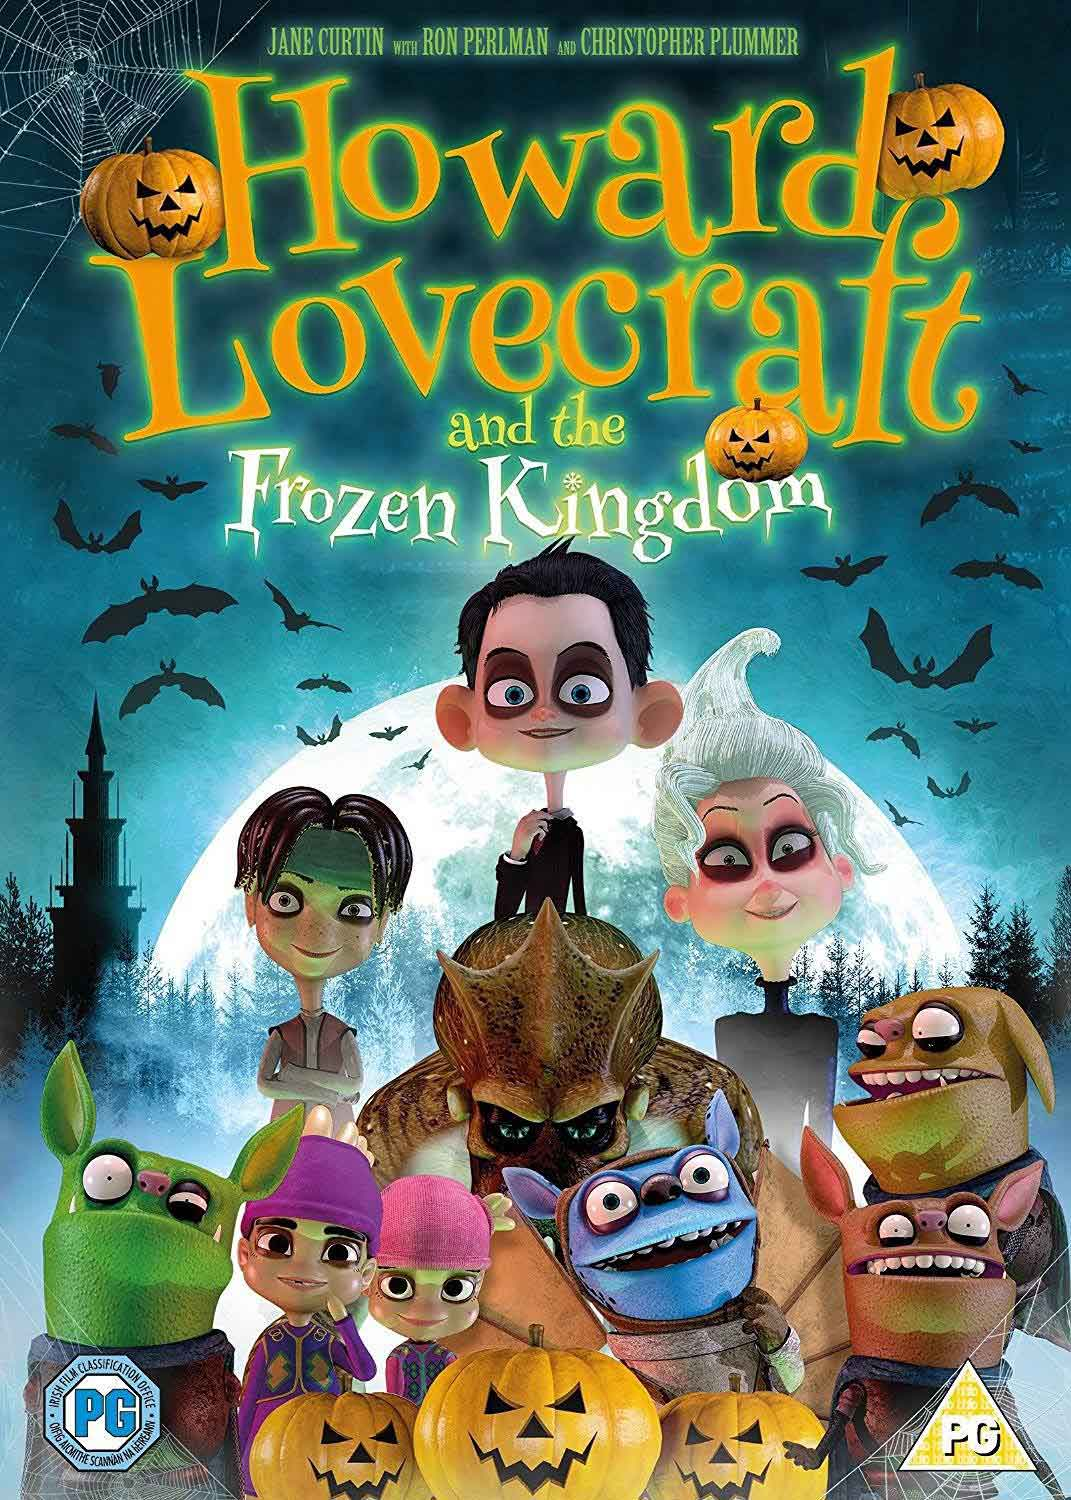 فيلم Howard Lovecraft & the Frozen Kingdom 2016 مترجم